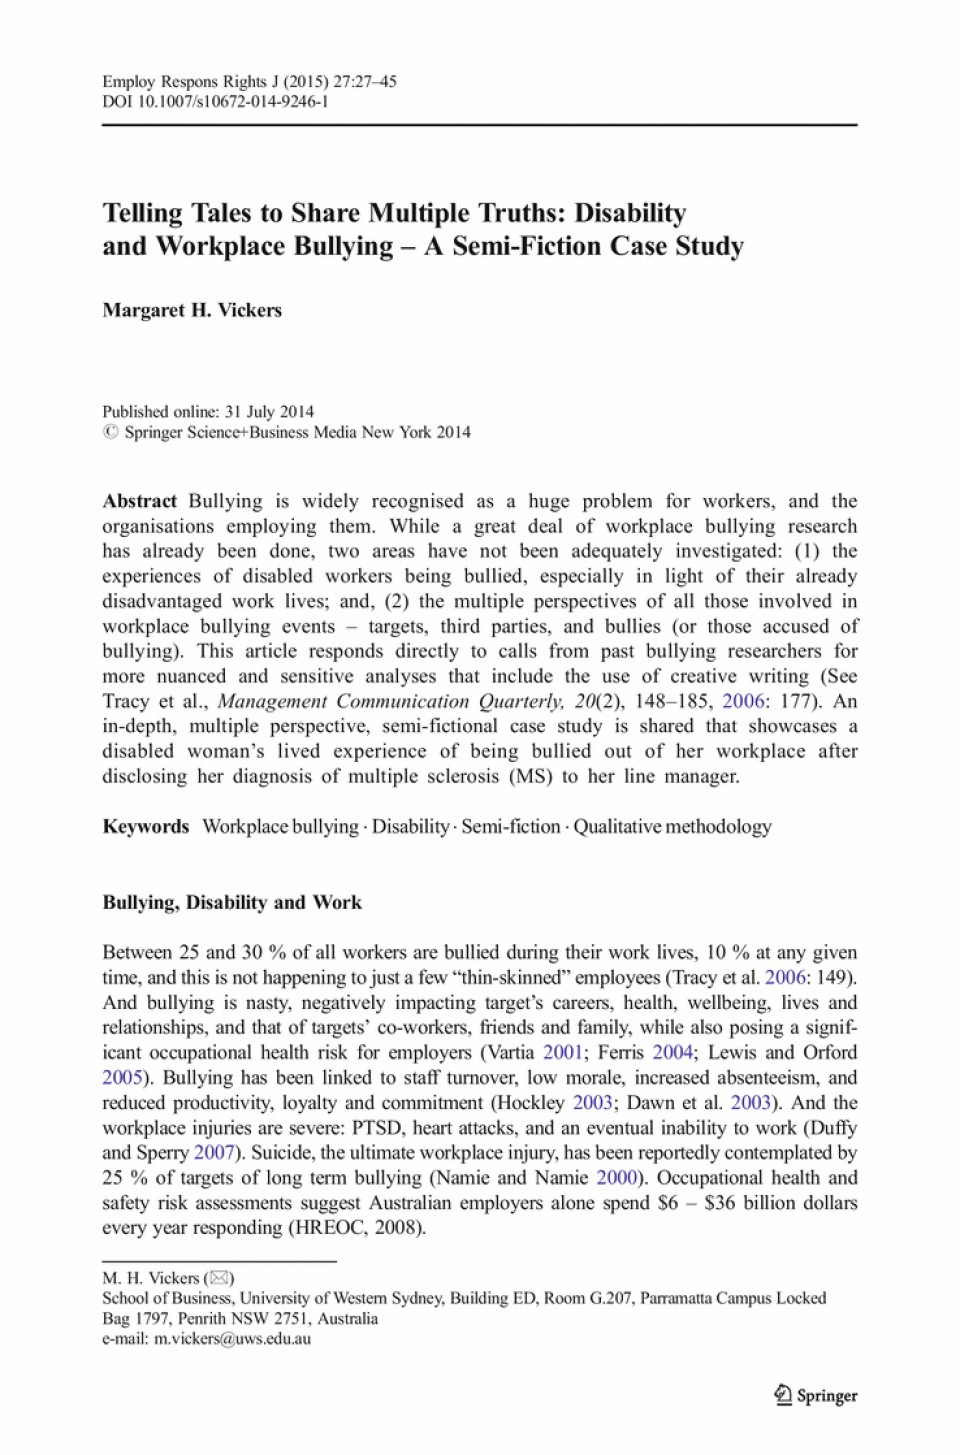 009 Cyberbullying Research Paper Pdf Narrative Essay Bullying Buy Original Conclusion To L Unique Effects Of 960